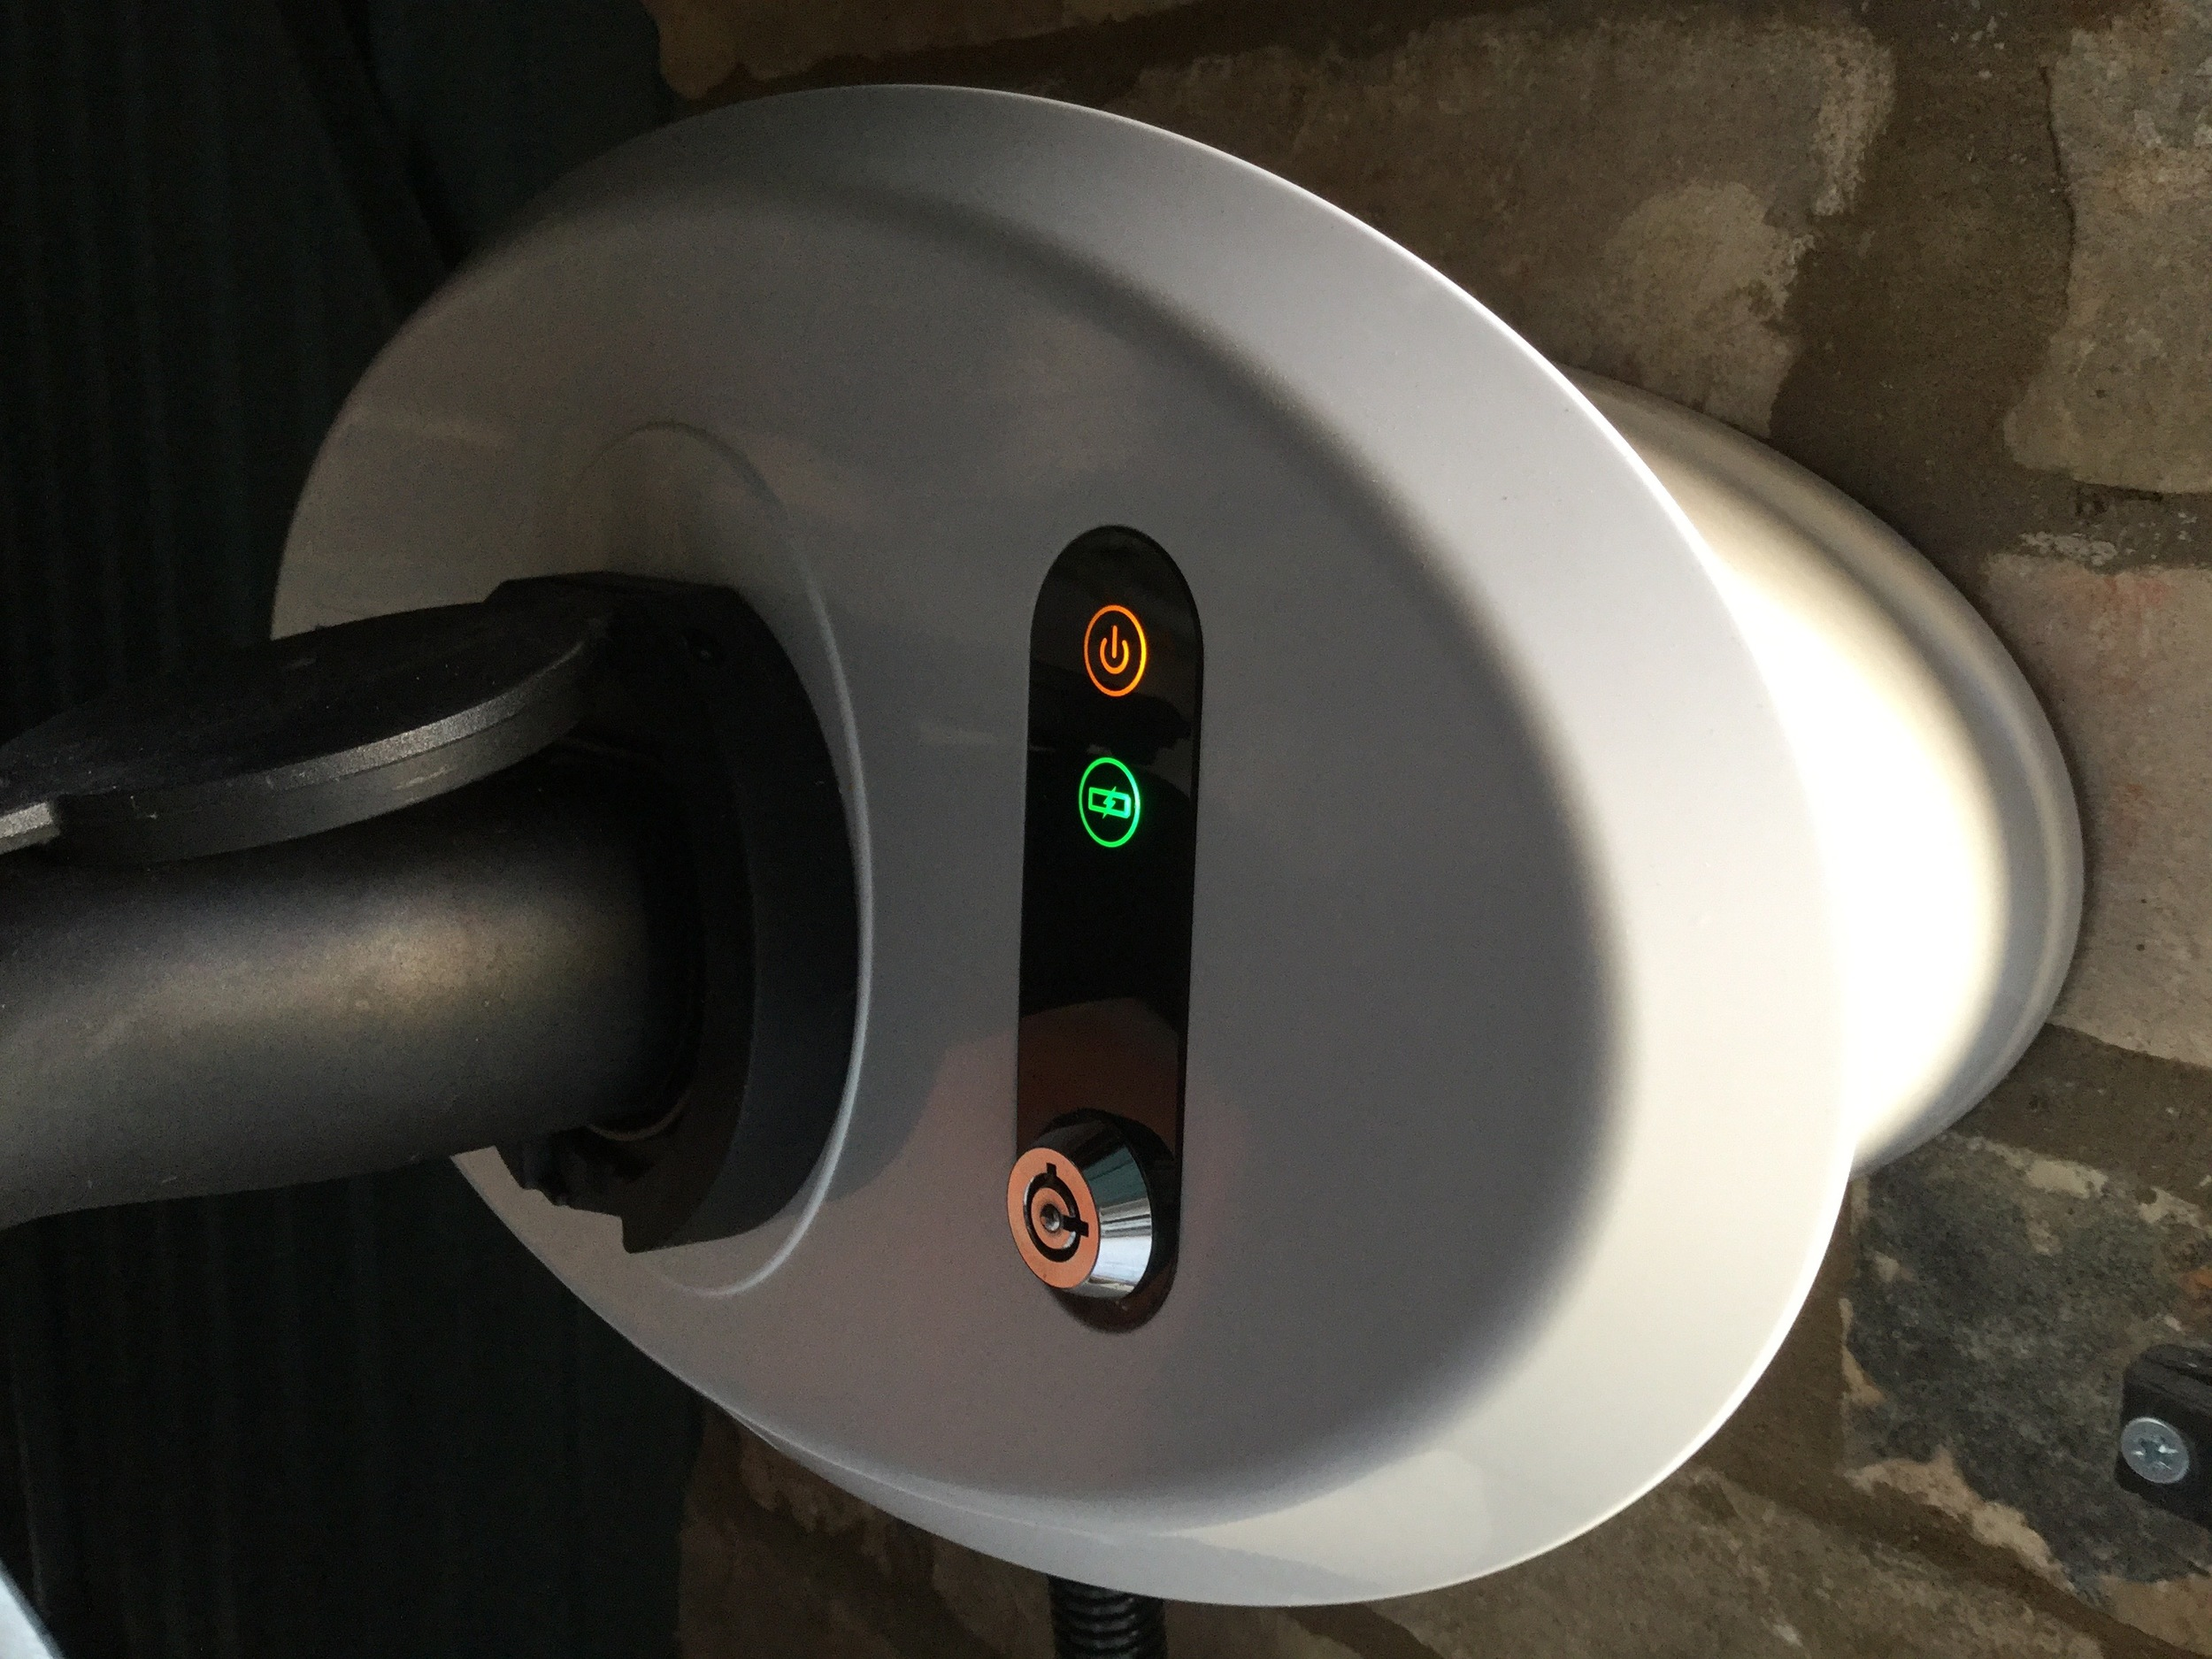 If you drive an electric vehicle, as we do, feel free to plug into our charging station whilst we chat.